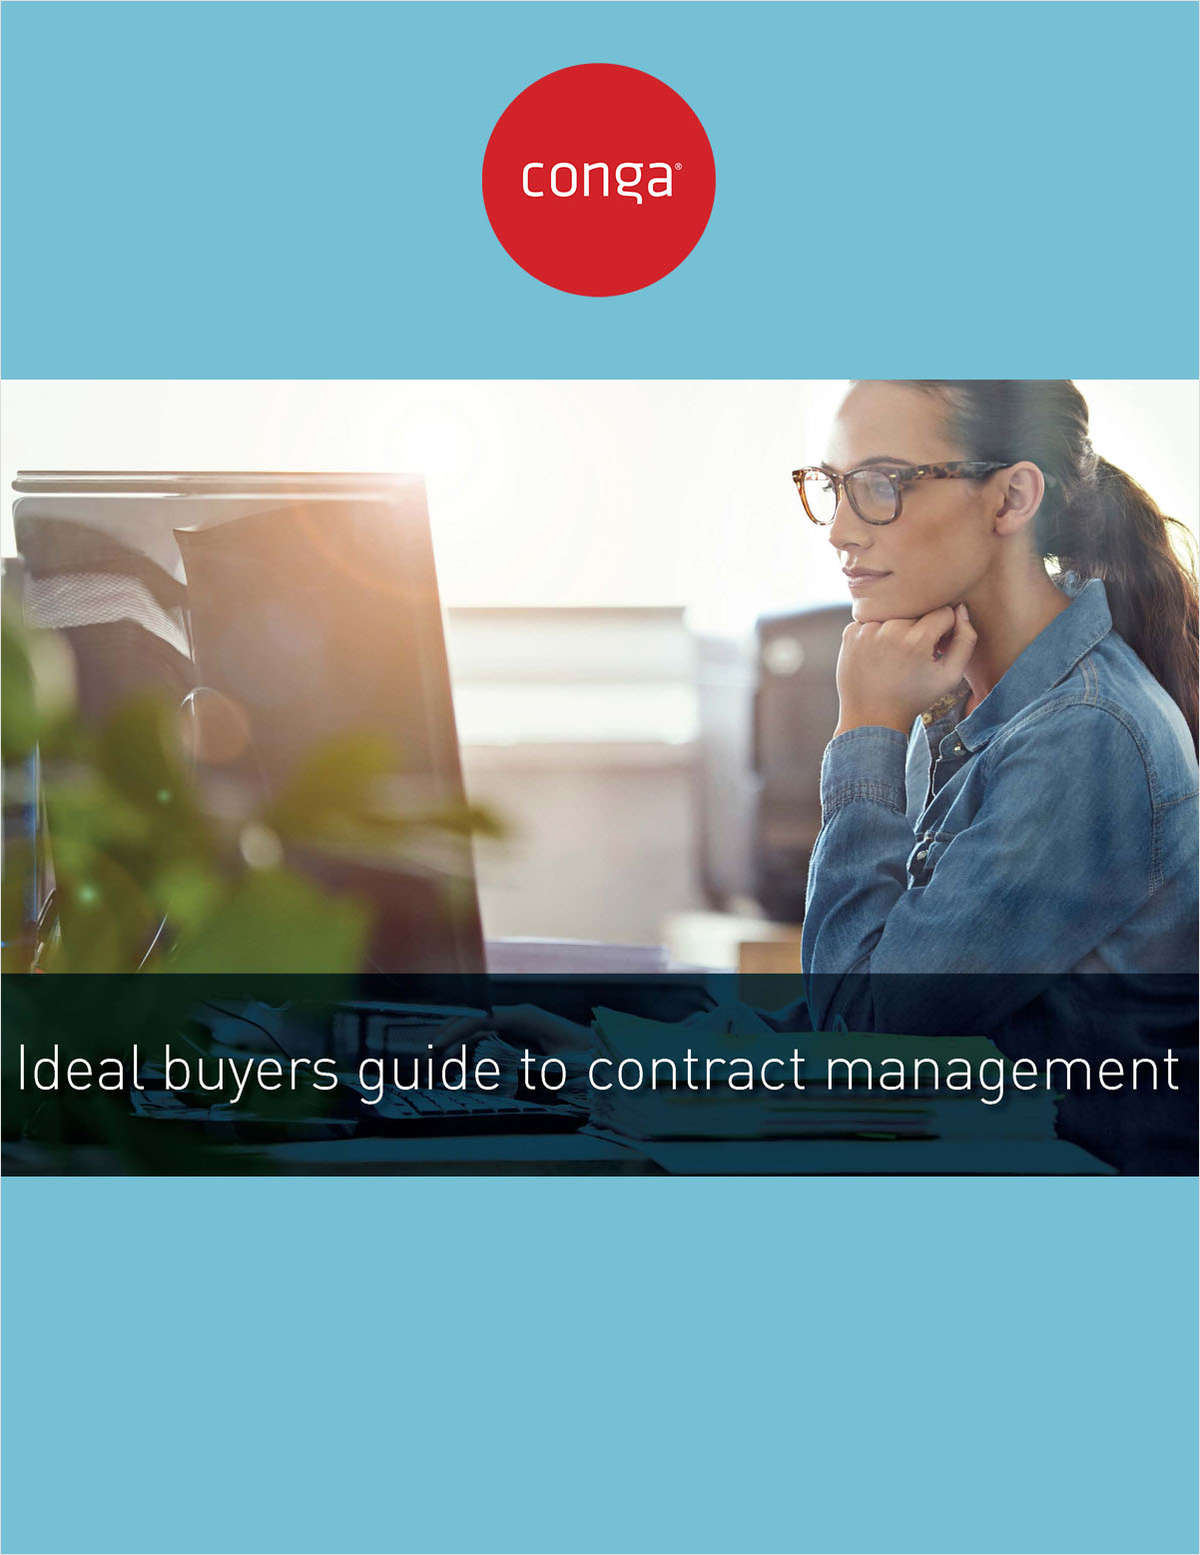 Buyers Guide to Contract Management